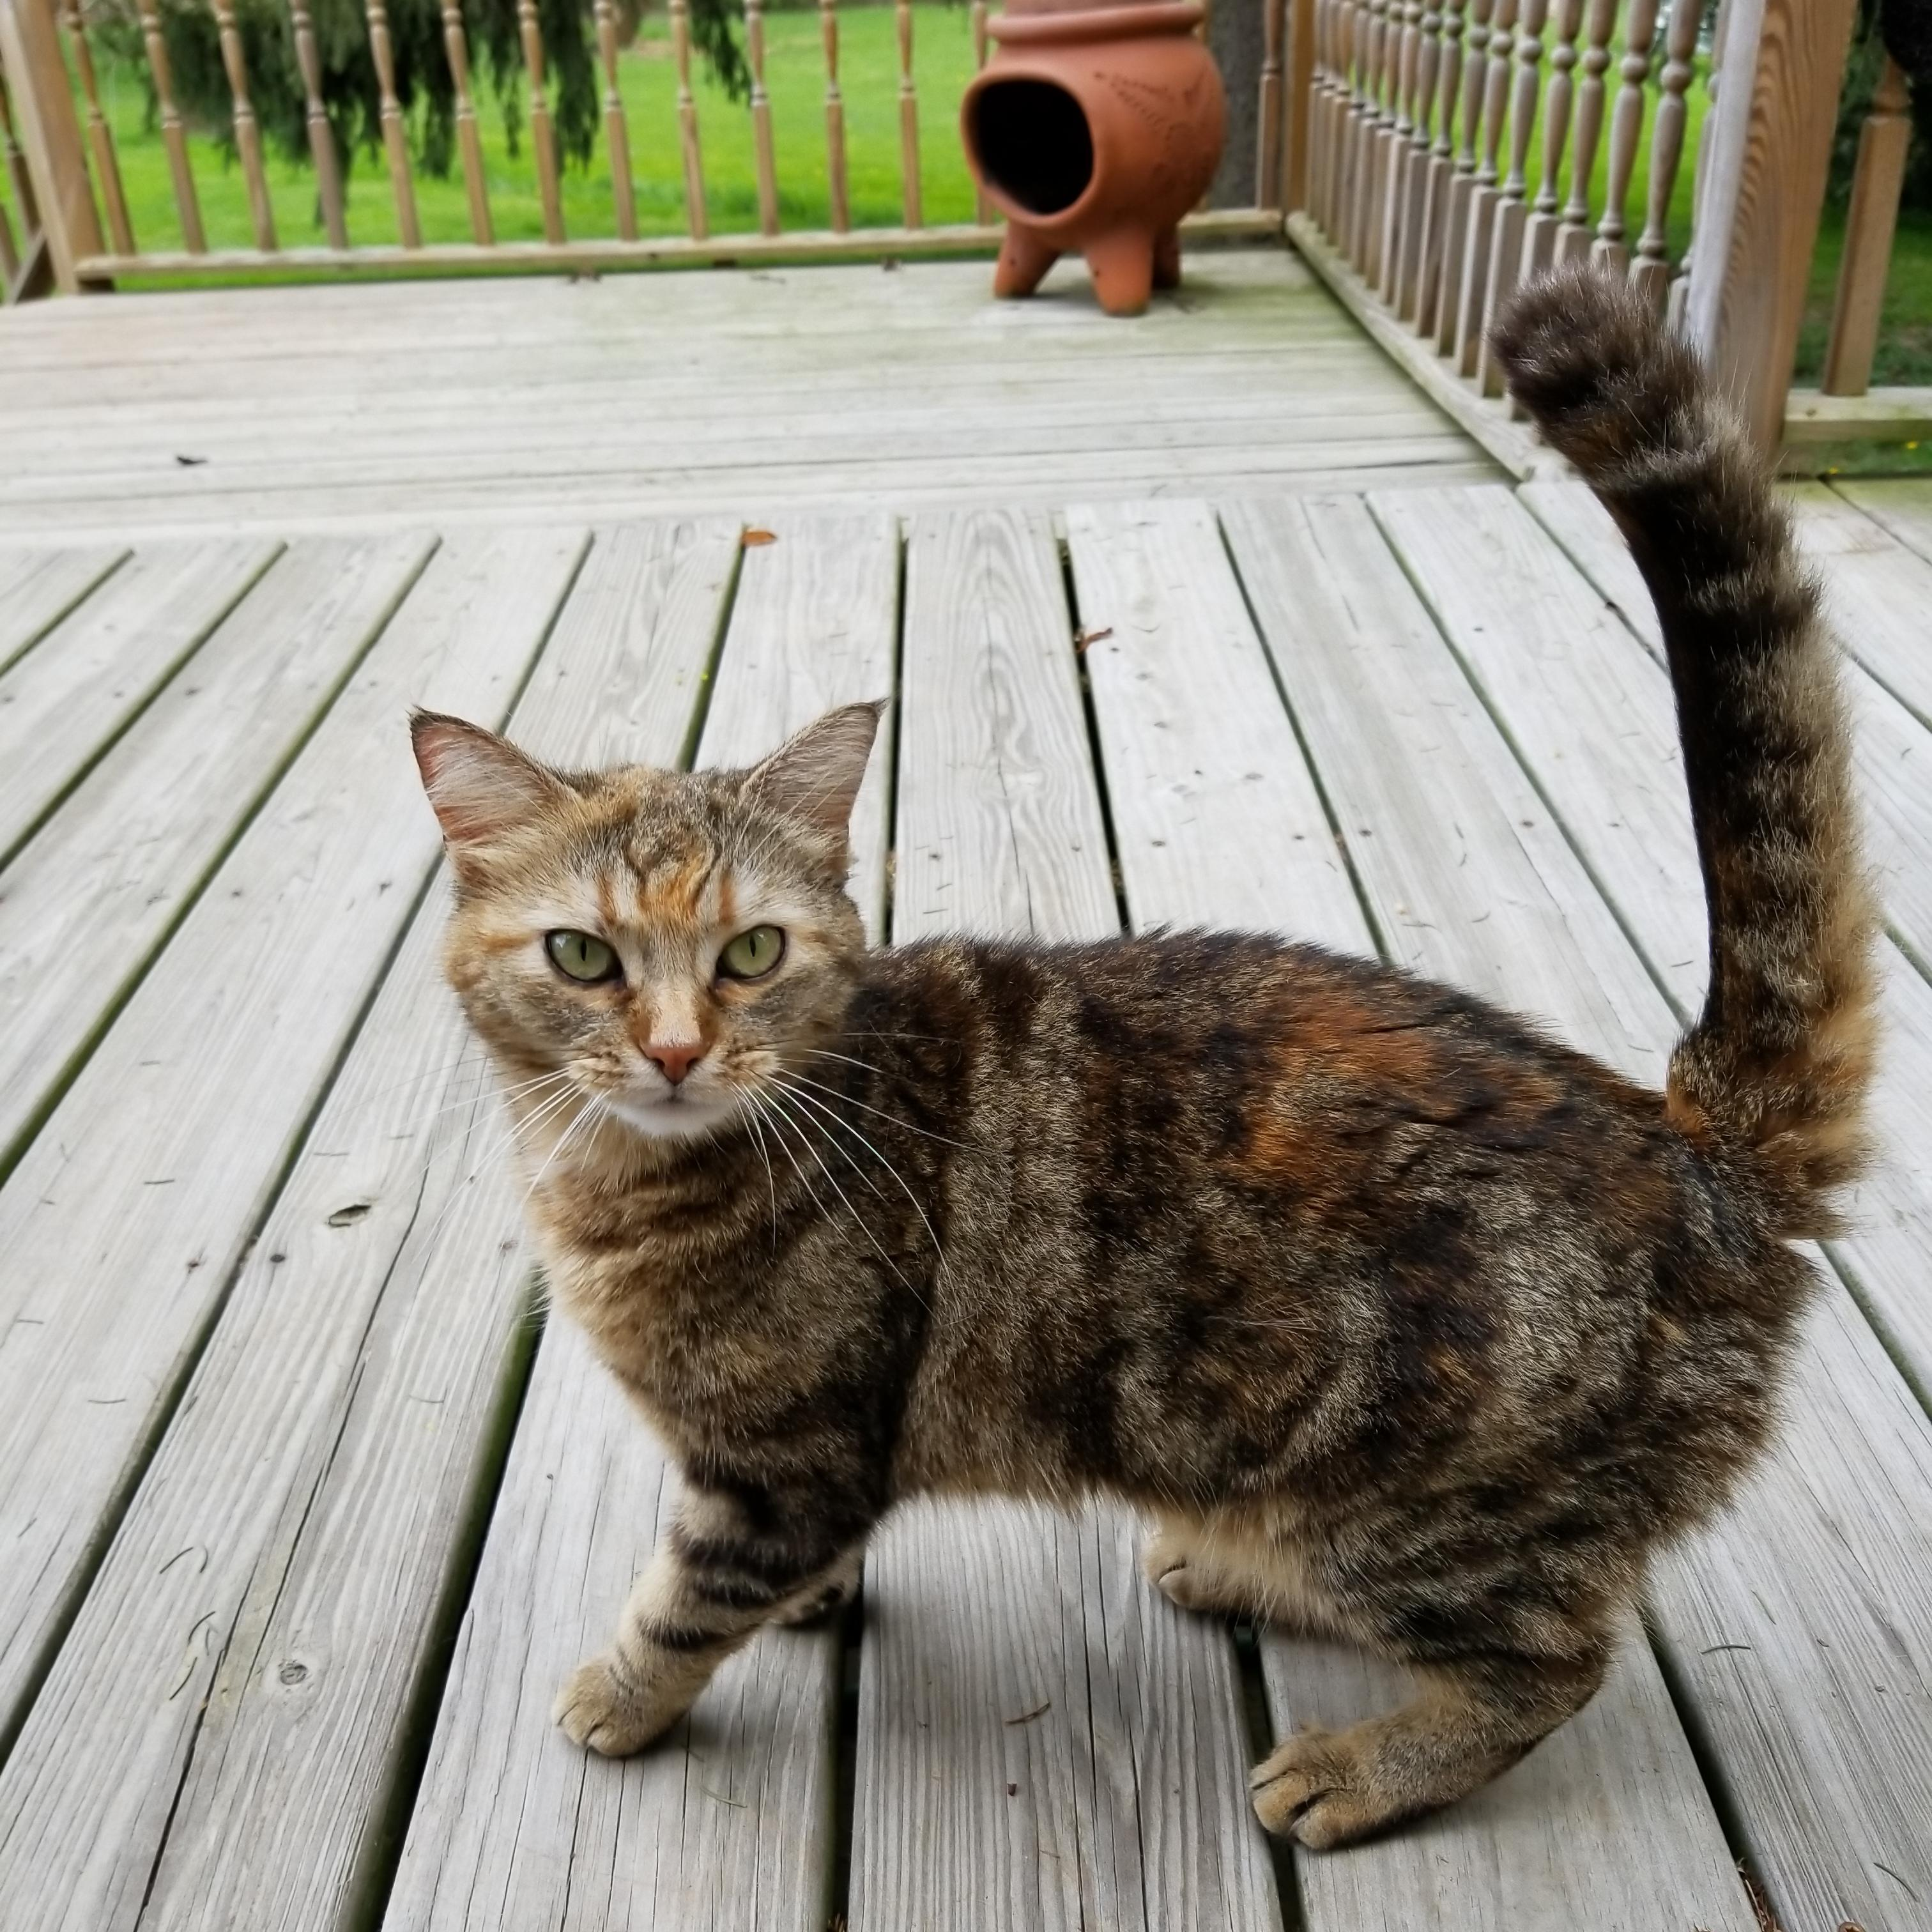 My mom\'s cat\'s fur is a blend of tabby and calico. She looks.